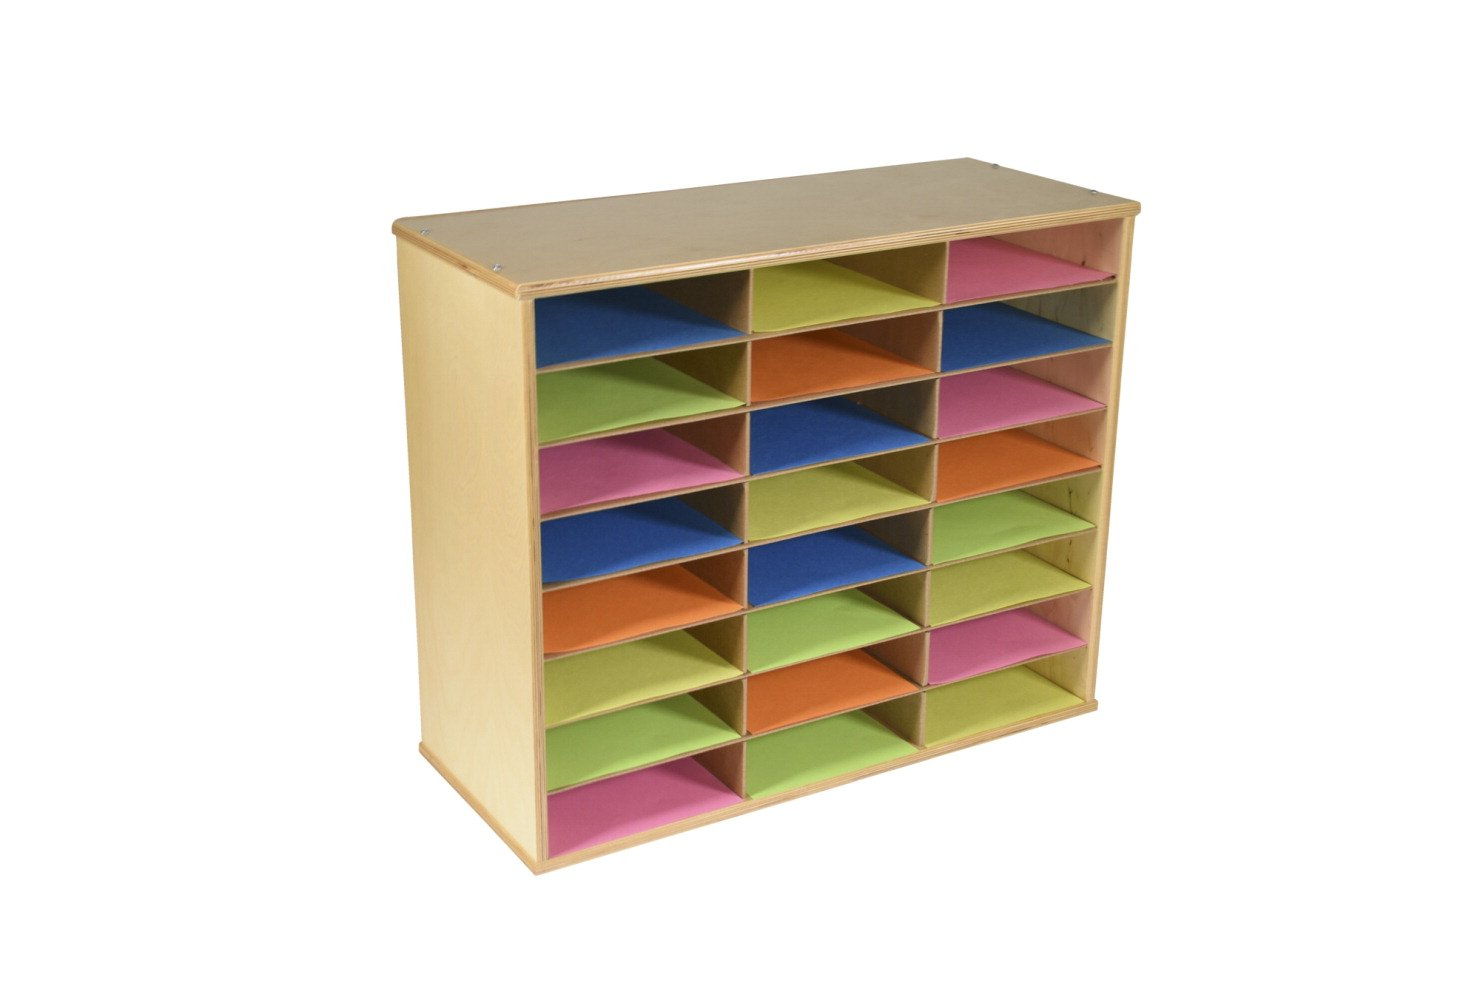 Classroom Select Storage Organizer, 29 x 11-7/8 x 24 Inches, Natural Wood Exterior.